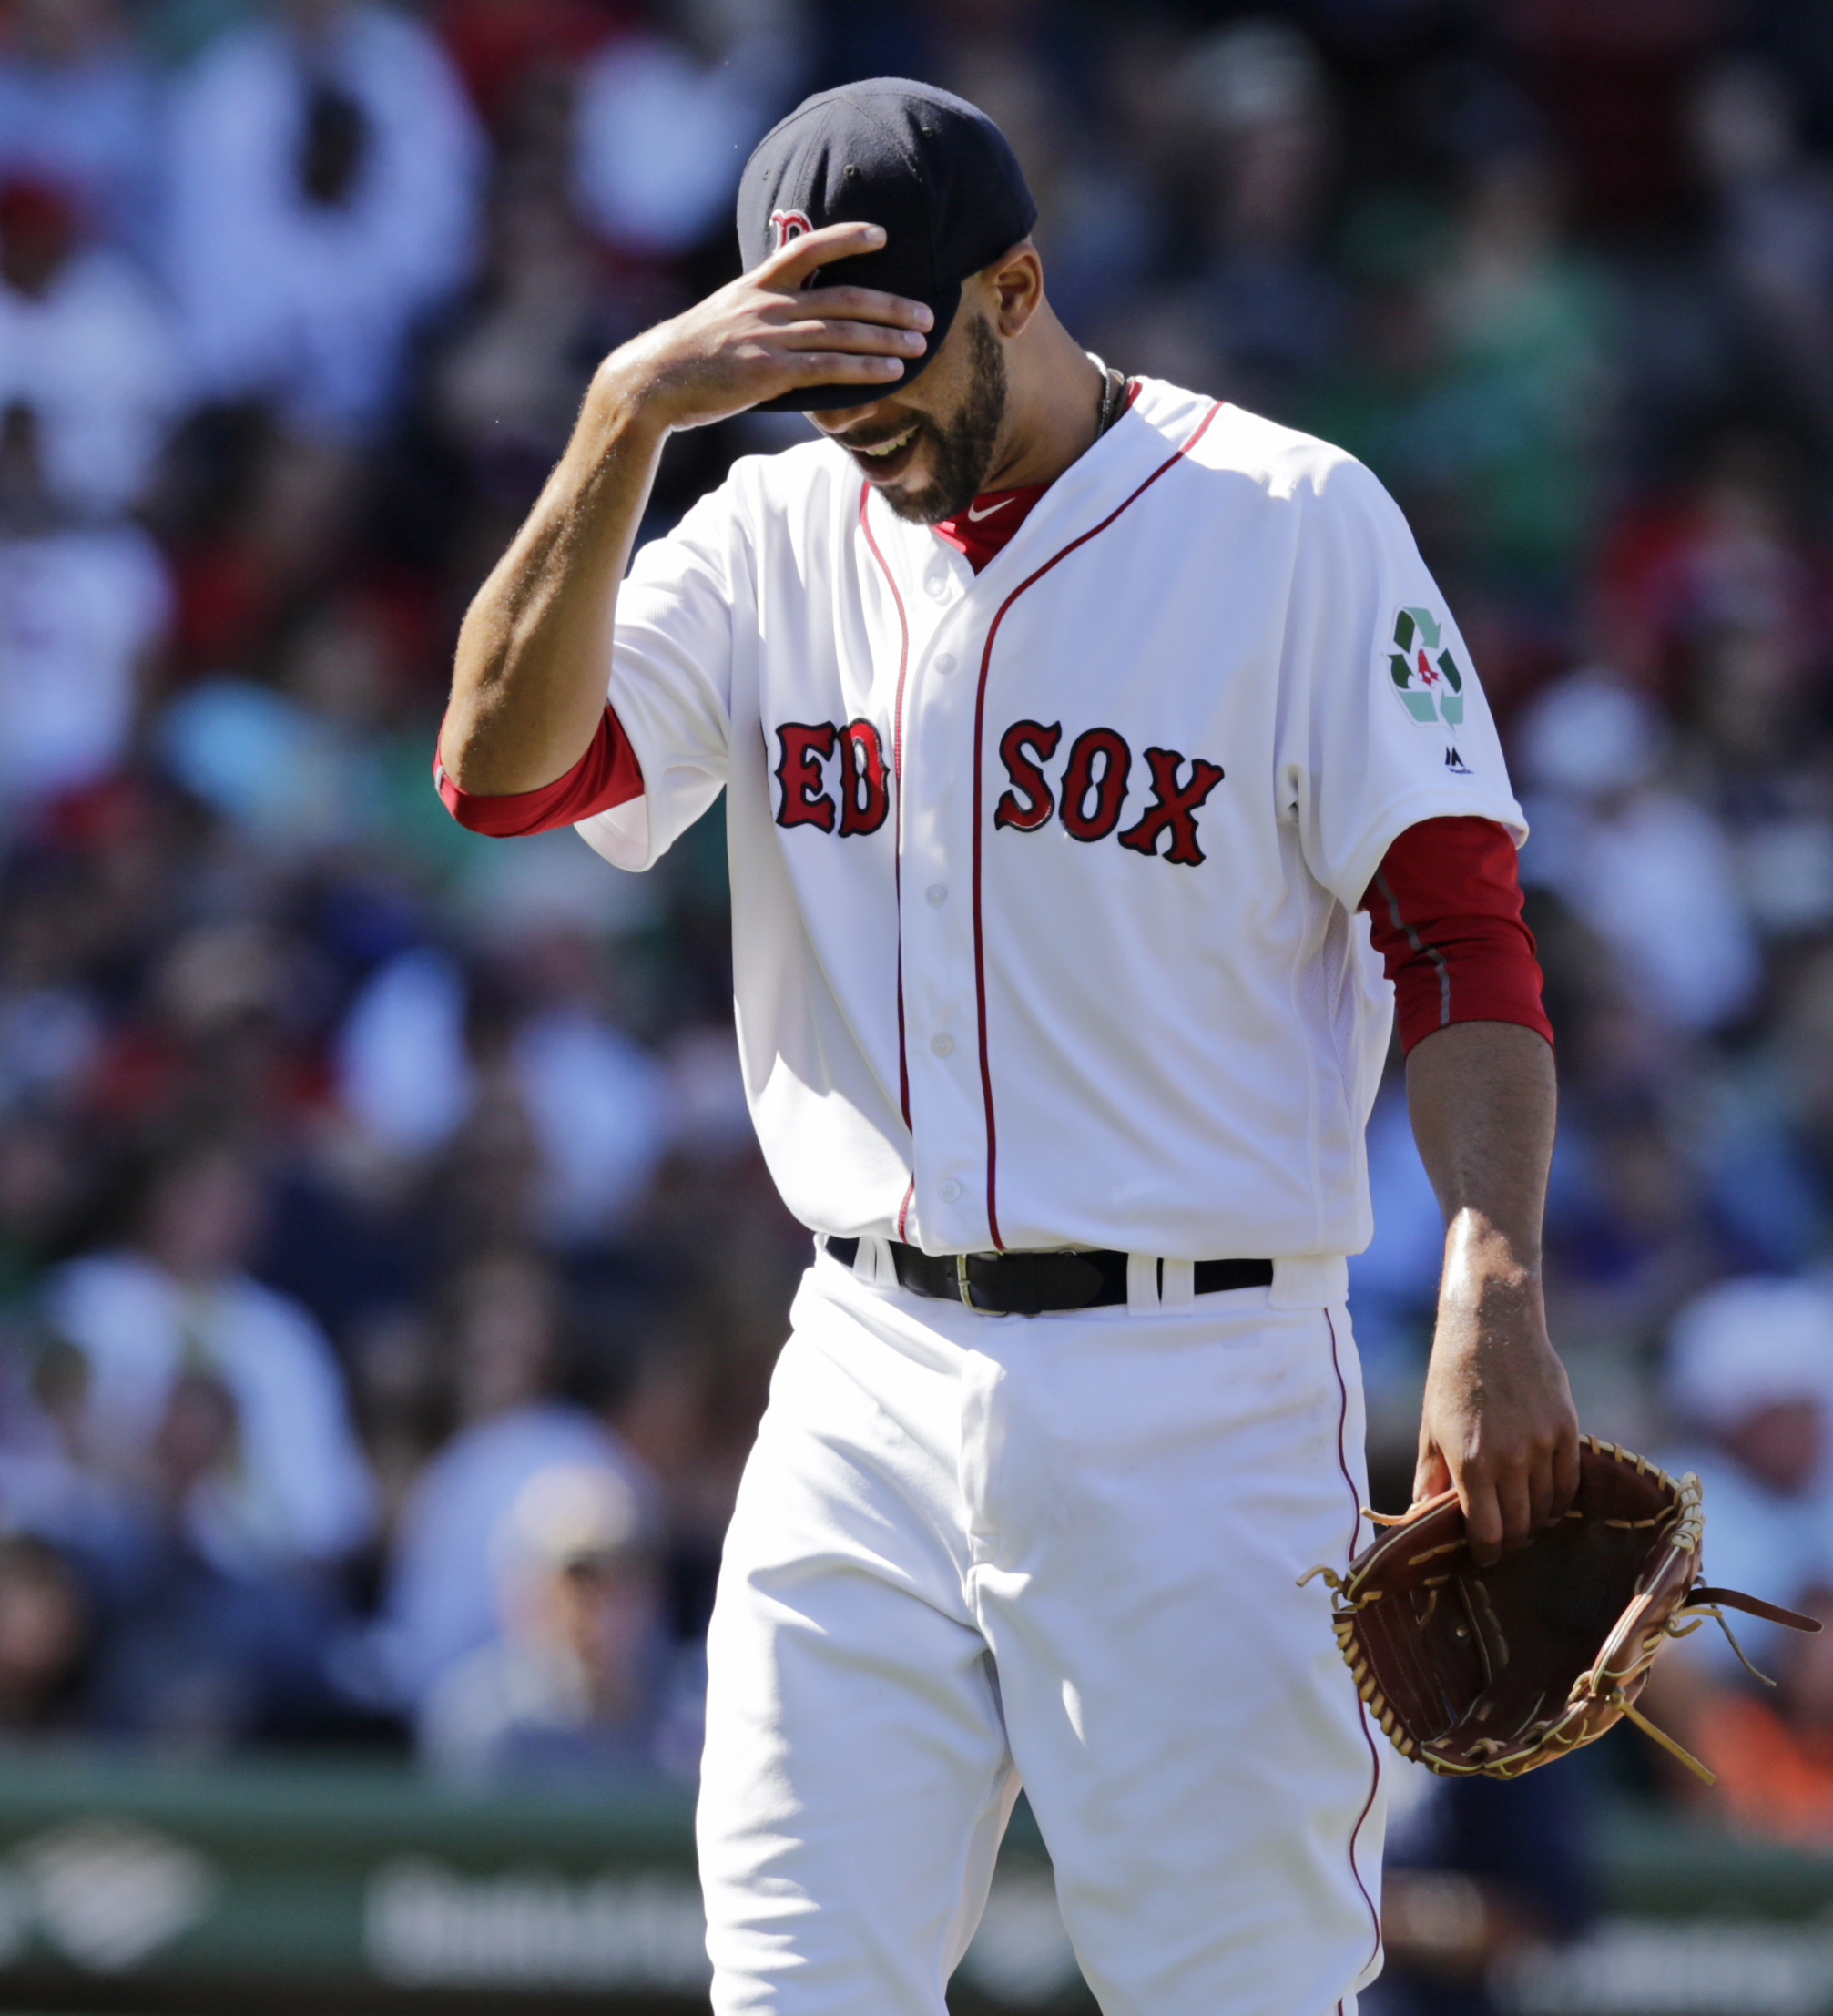 Boston Red Sox starting pitcher David Price tugs down on the brim of his cap while walking to the dugout after being pulled during the fourth inning of an MLB baseball game against the Tampa Bay Rays in Boston, Thursday, April 21, 2016. Price gave up six